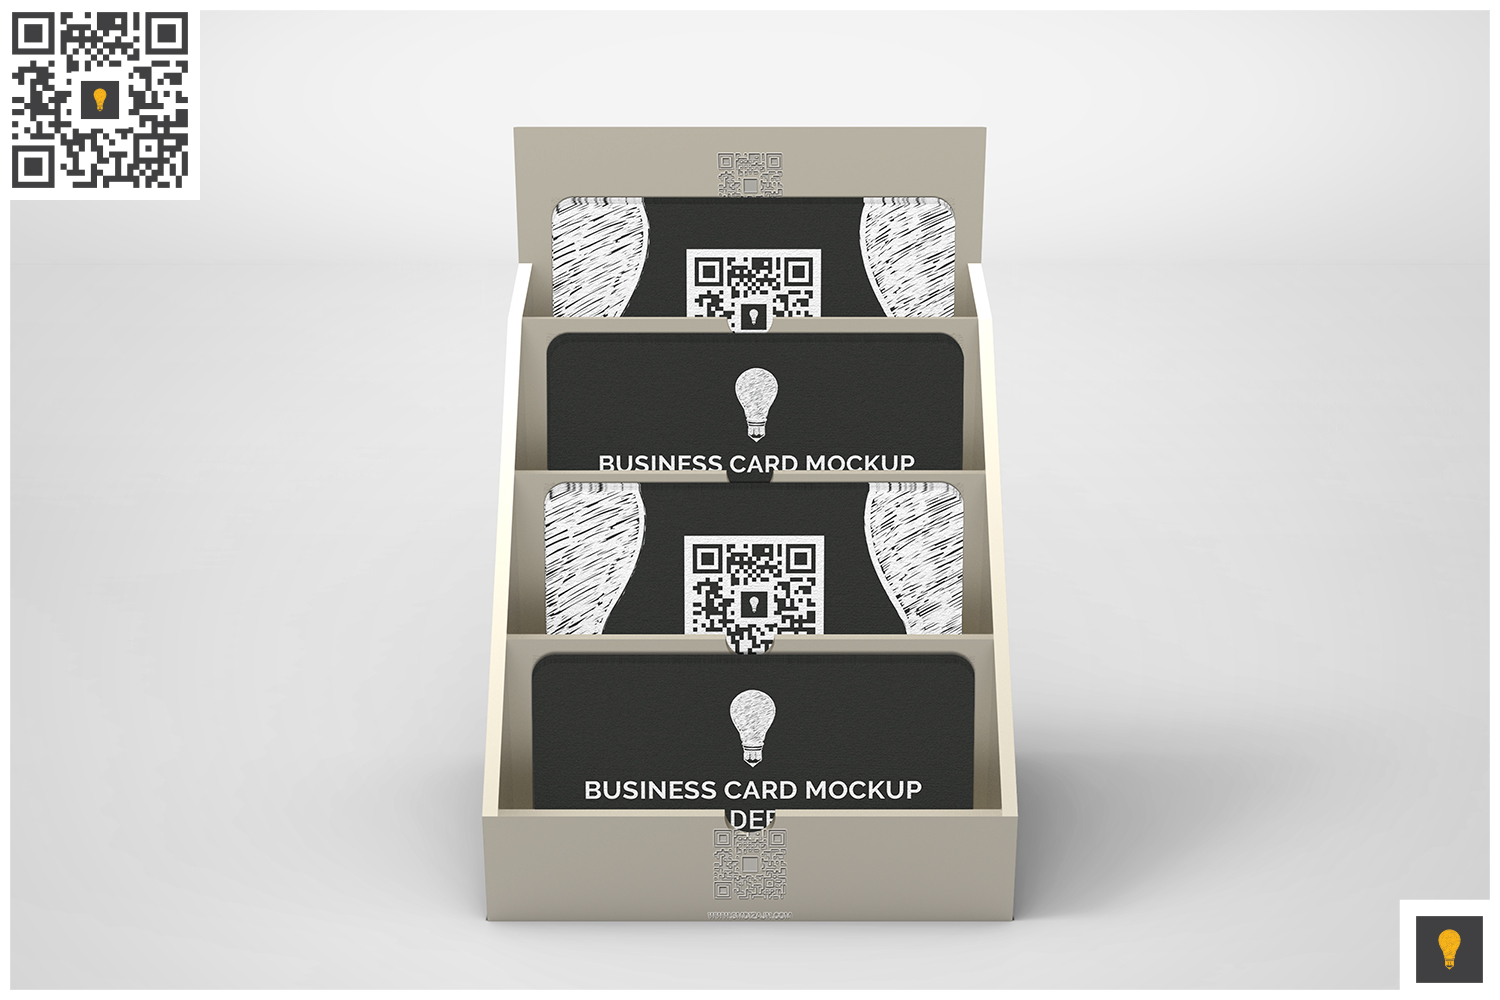 Business Card Holder Mockup example image 2